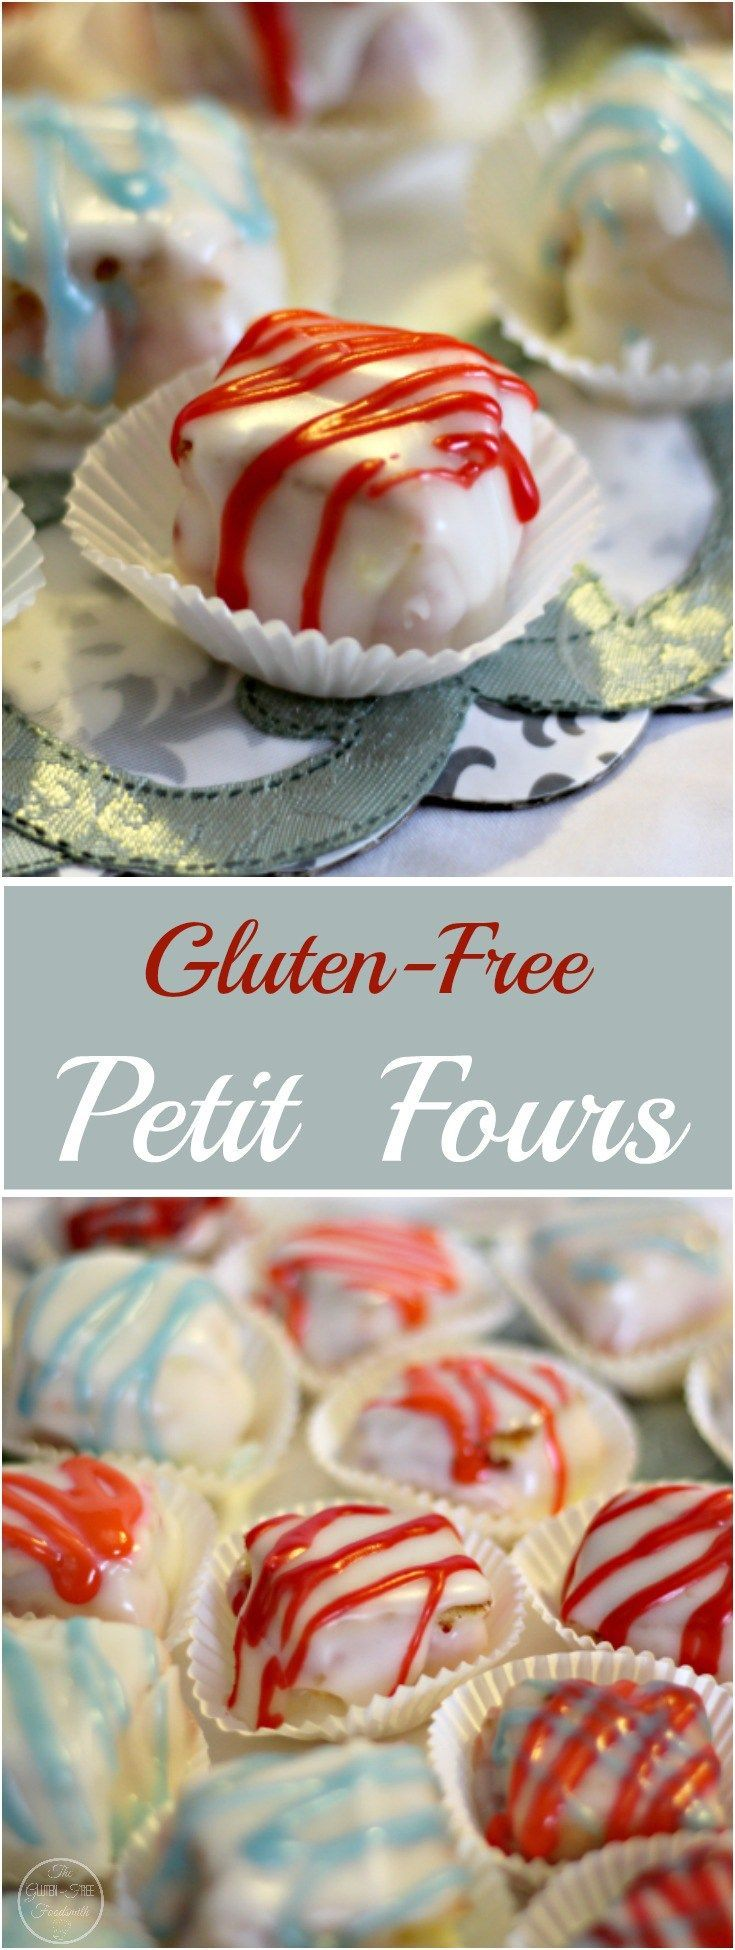 Gluten-Free Petit Fours are a delicious bite of tiny little cakes that are sure to please everyone! These tasty little things are great for any occasion!